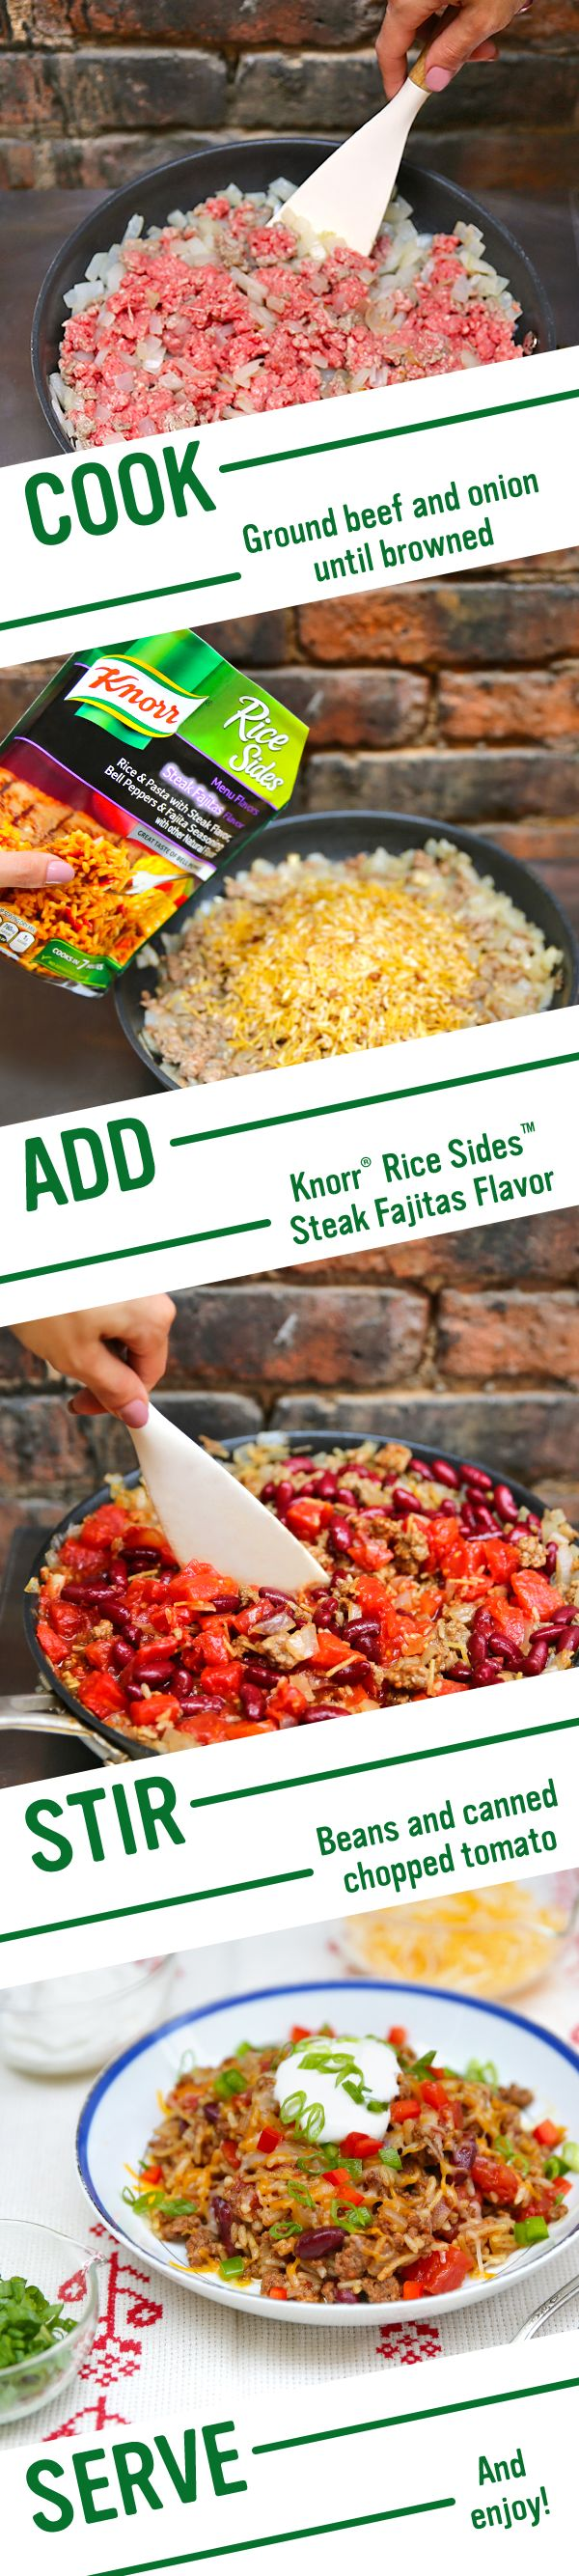 Need a simple, family (and budget) friendly dinner tonight? Follow this easy recipe for flavorful Fajita Chili Con Carne! 1. Cook ground beef with onion. 2. Add Knorr® Menu Flavors Rice Sides™ - Steak Fajitas flavor,  stir beans and canned chopped tomatoes 3. Garnish with sour cream, shredded cheddar cheese, sliced green onions, and serve. Enjoy!